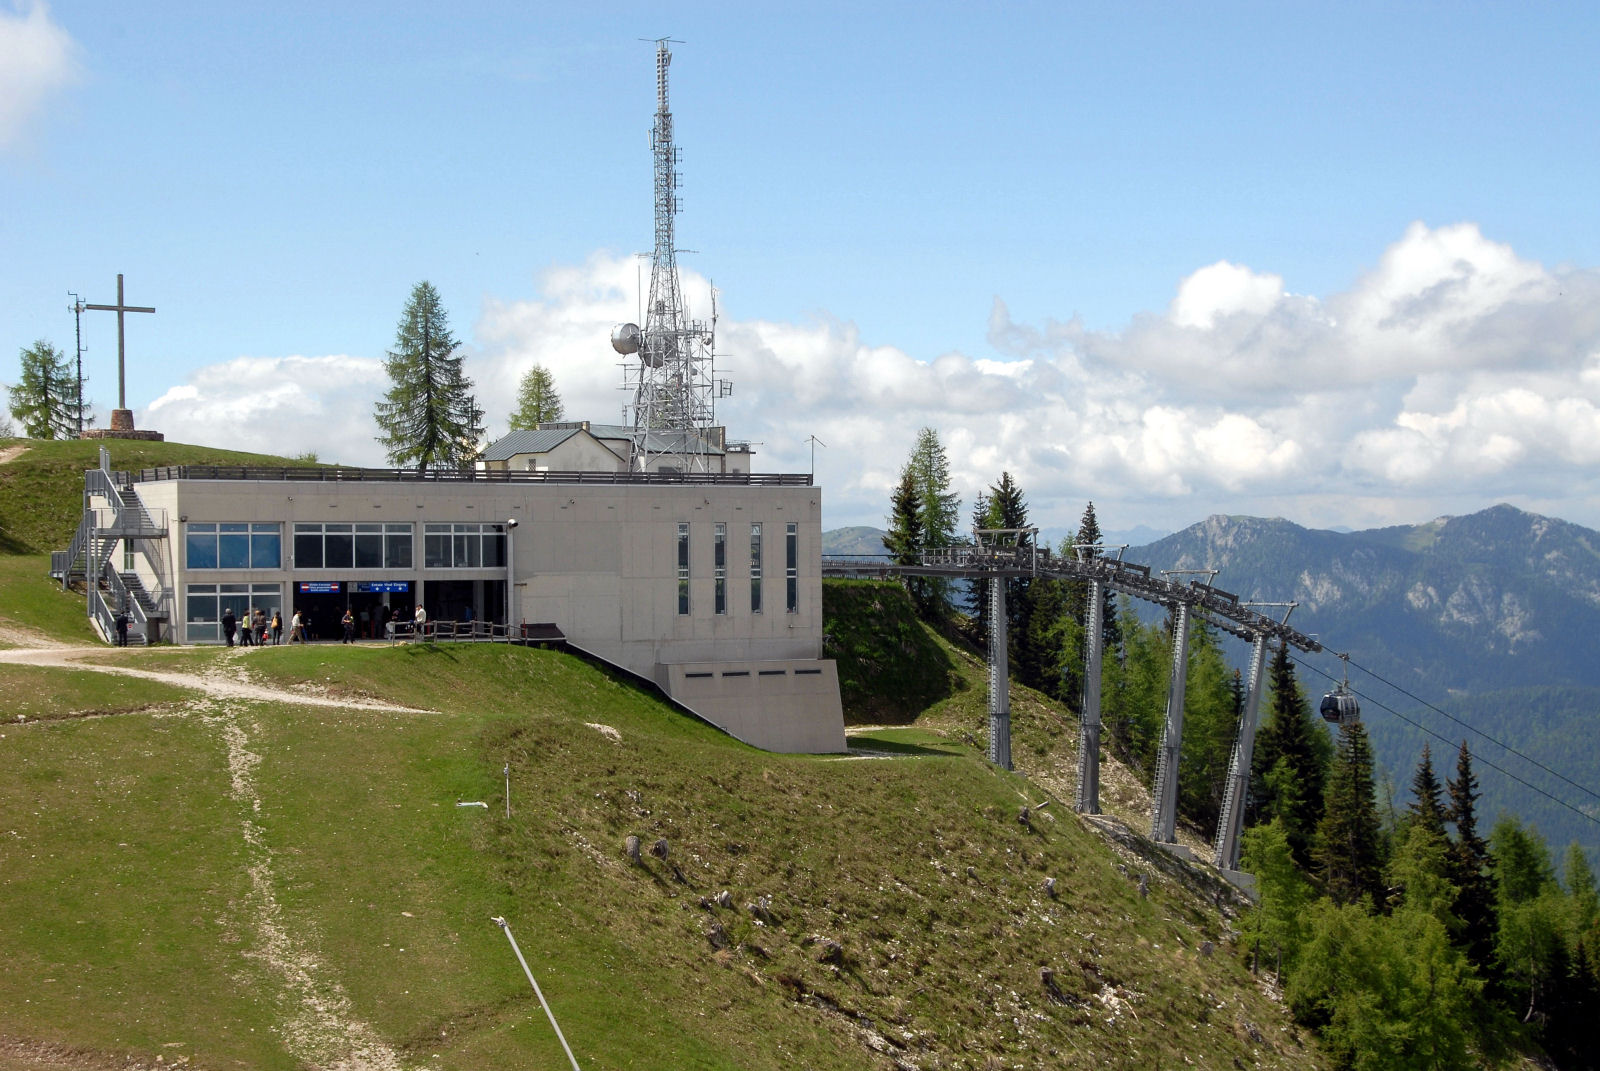 Mountain station of the cable car on the Mount Lussari